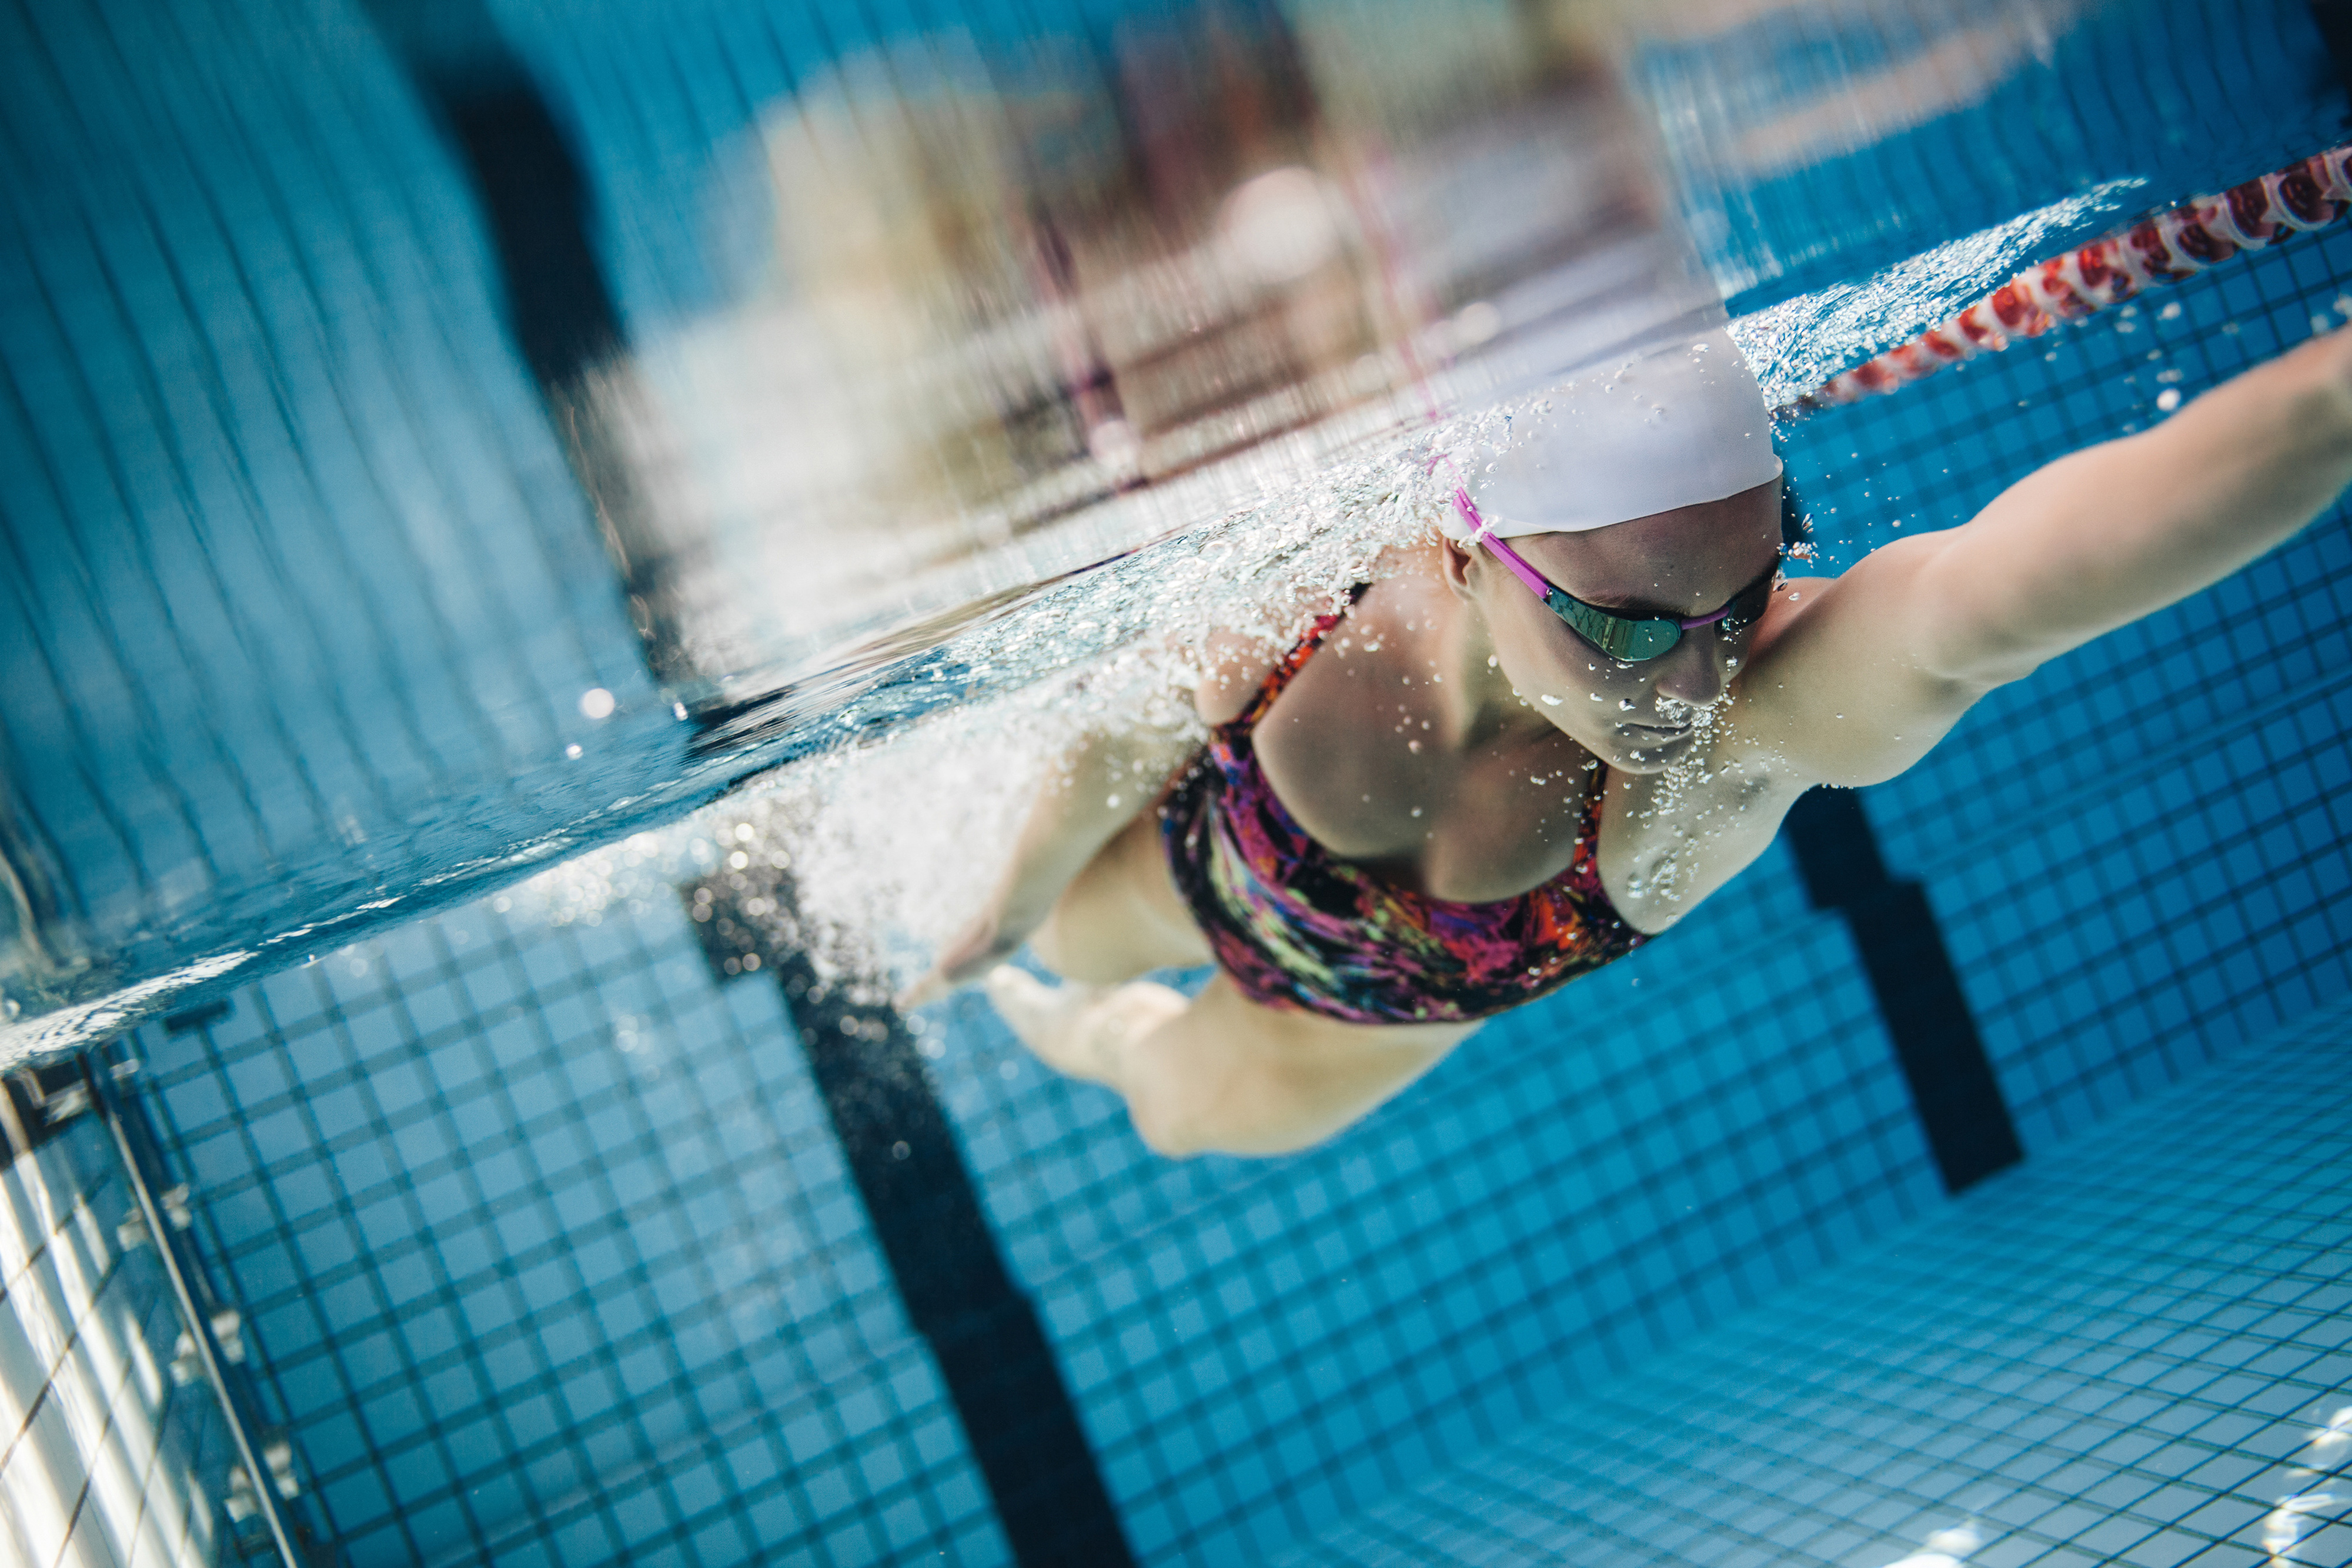 Swimming pool swimming figures underwater view 54807